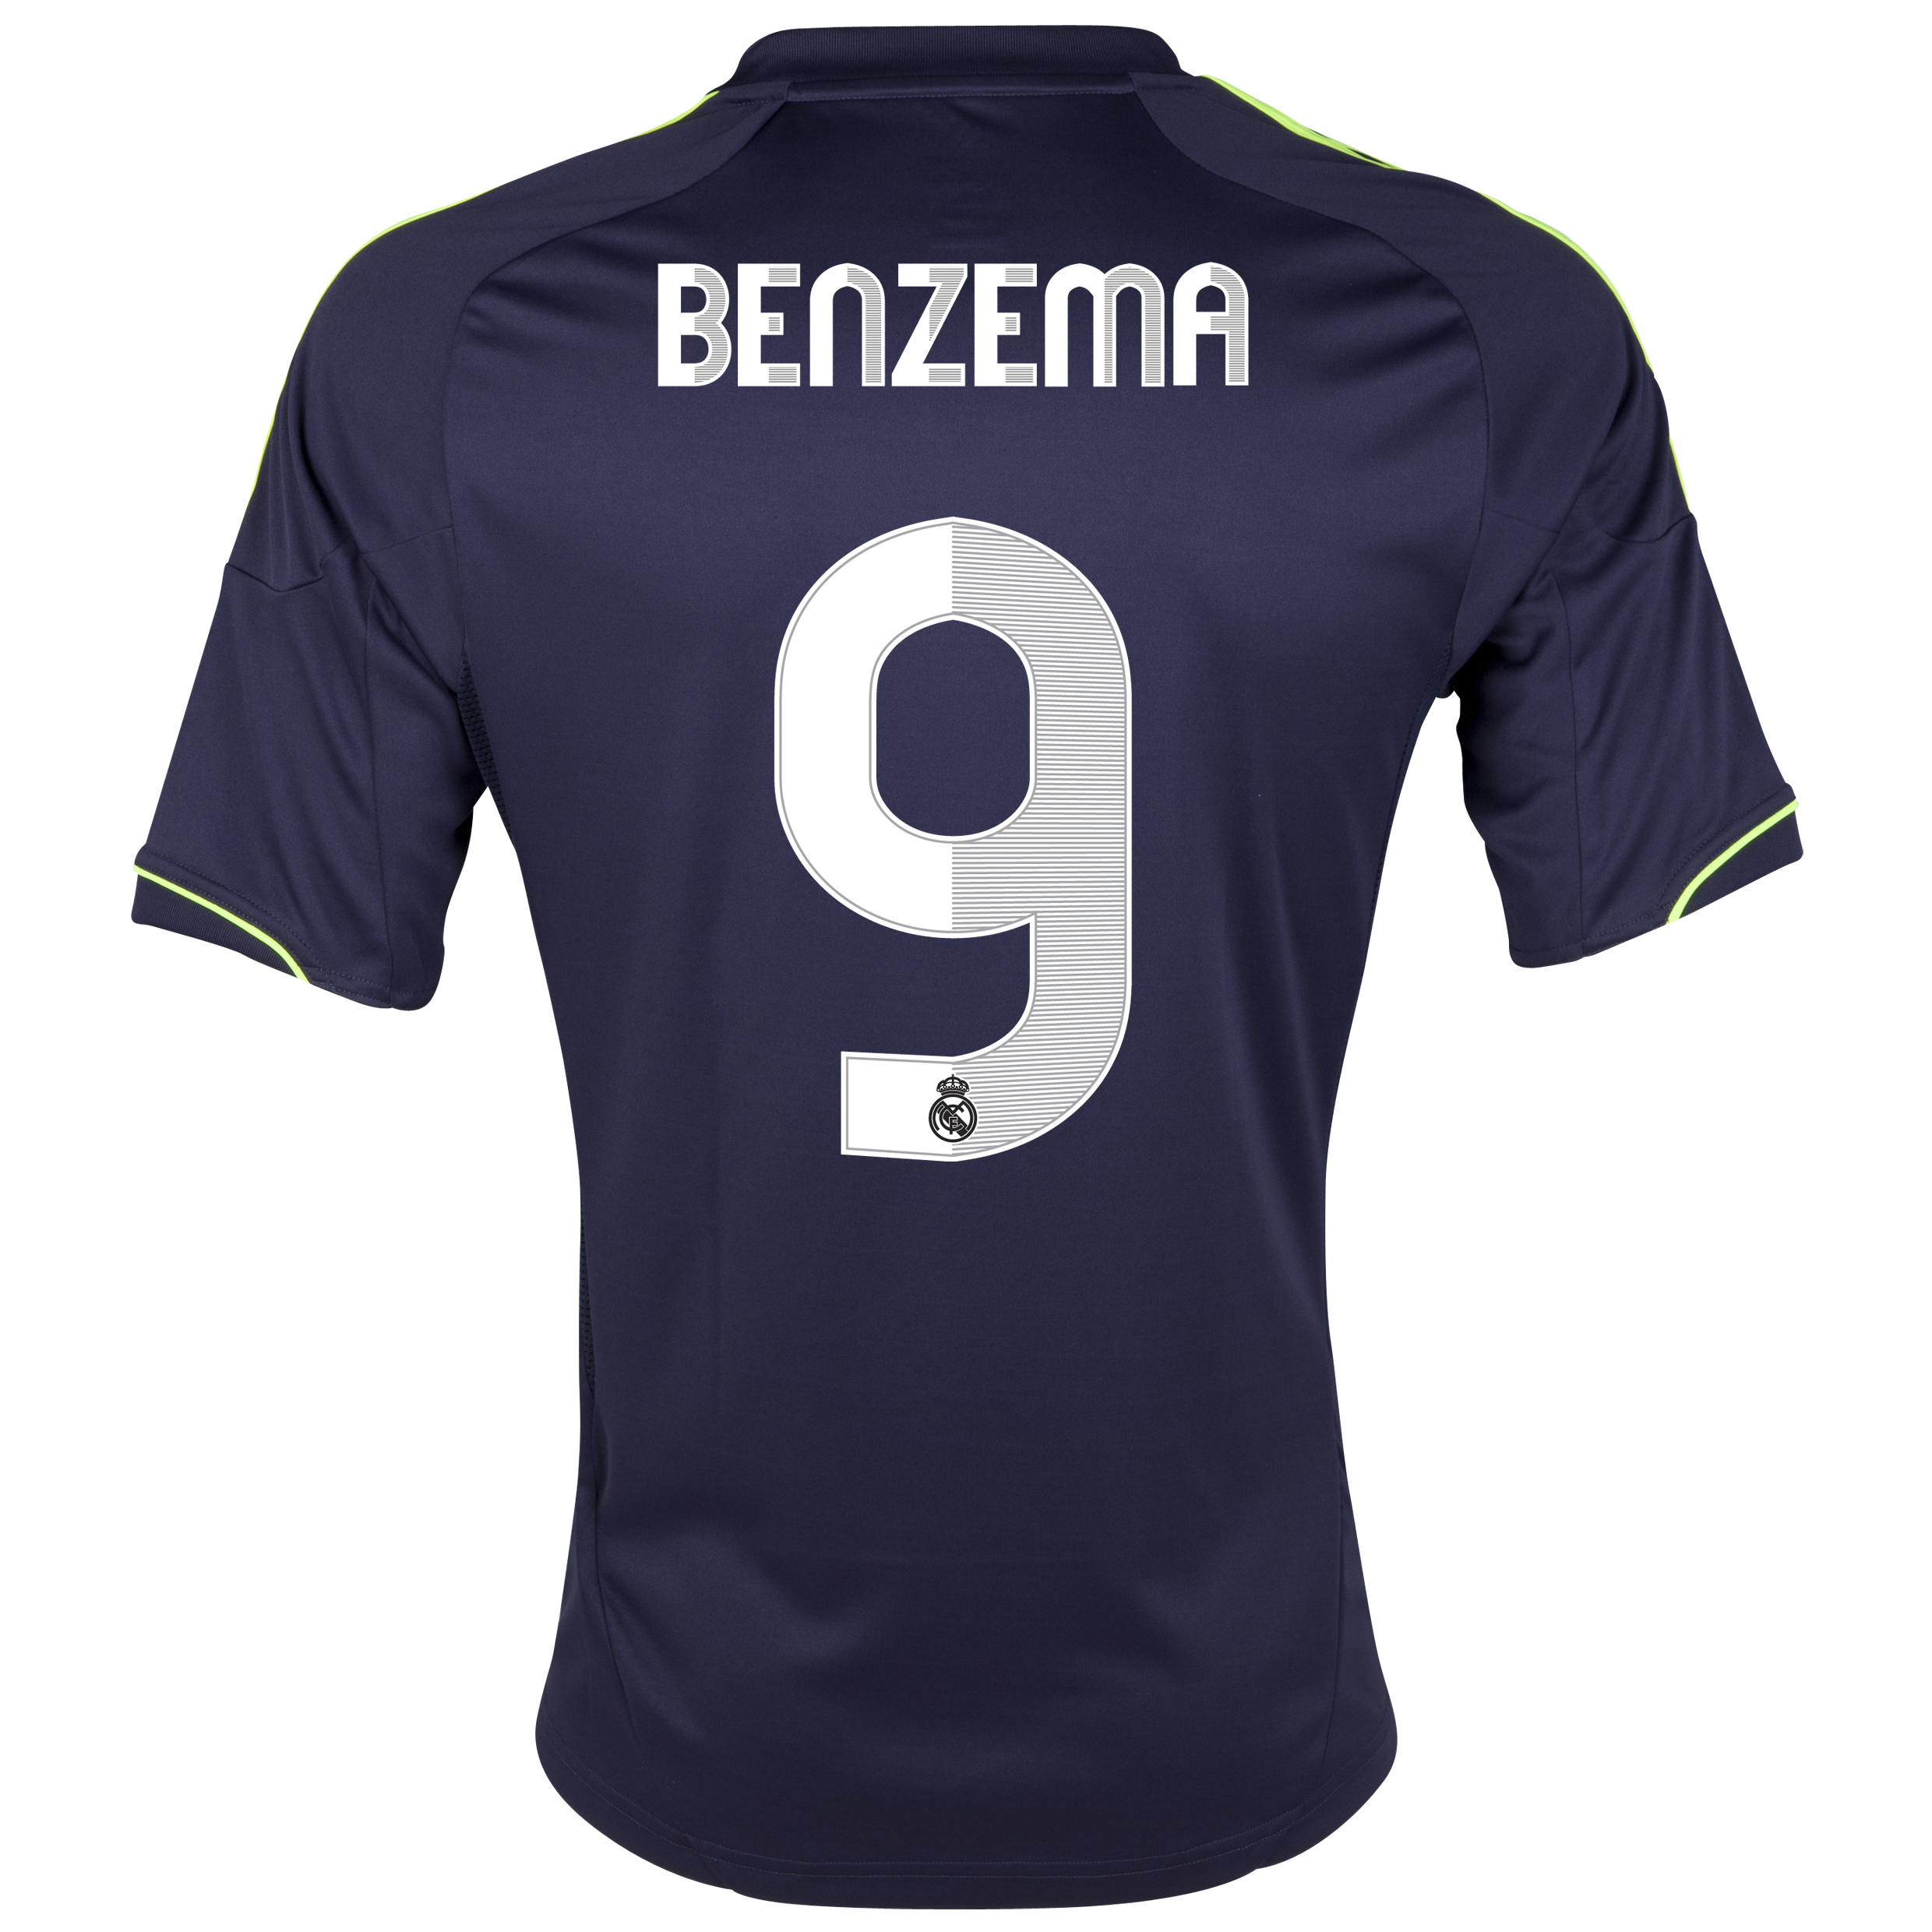 Real Madrid Away Shirt 2012/13 - Youths with Benzema 9 printing